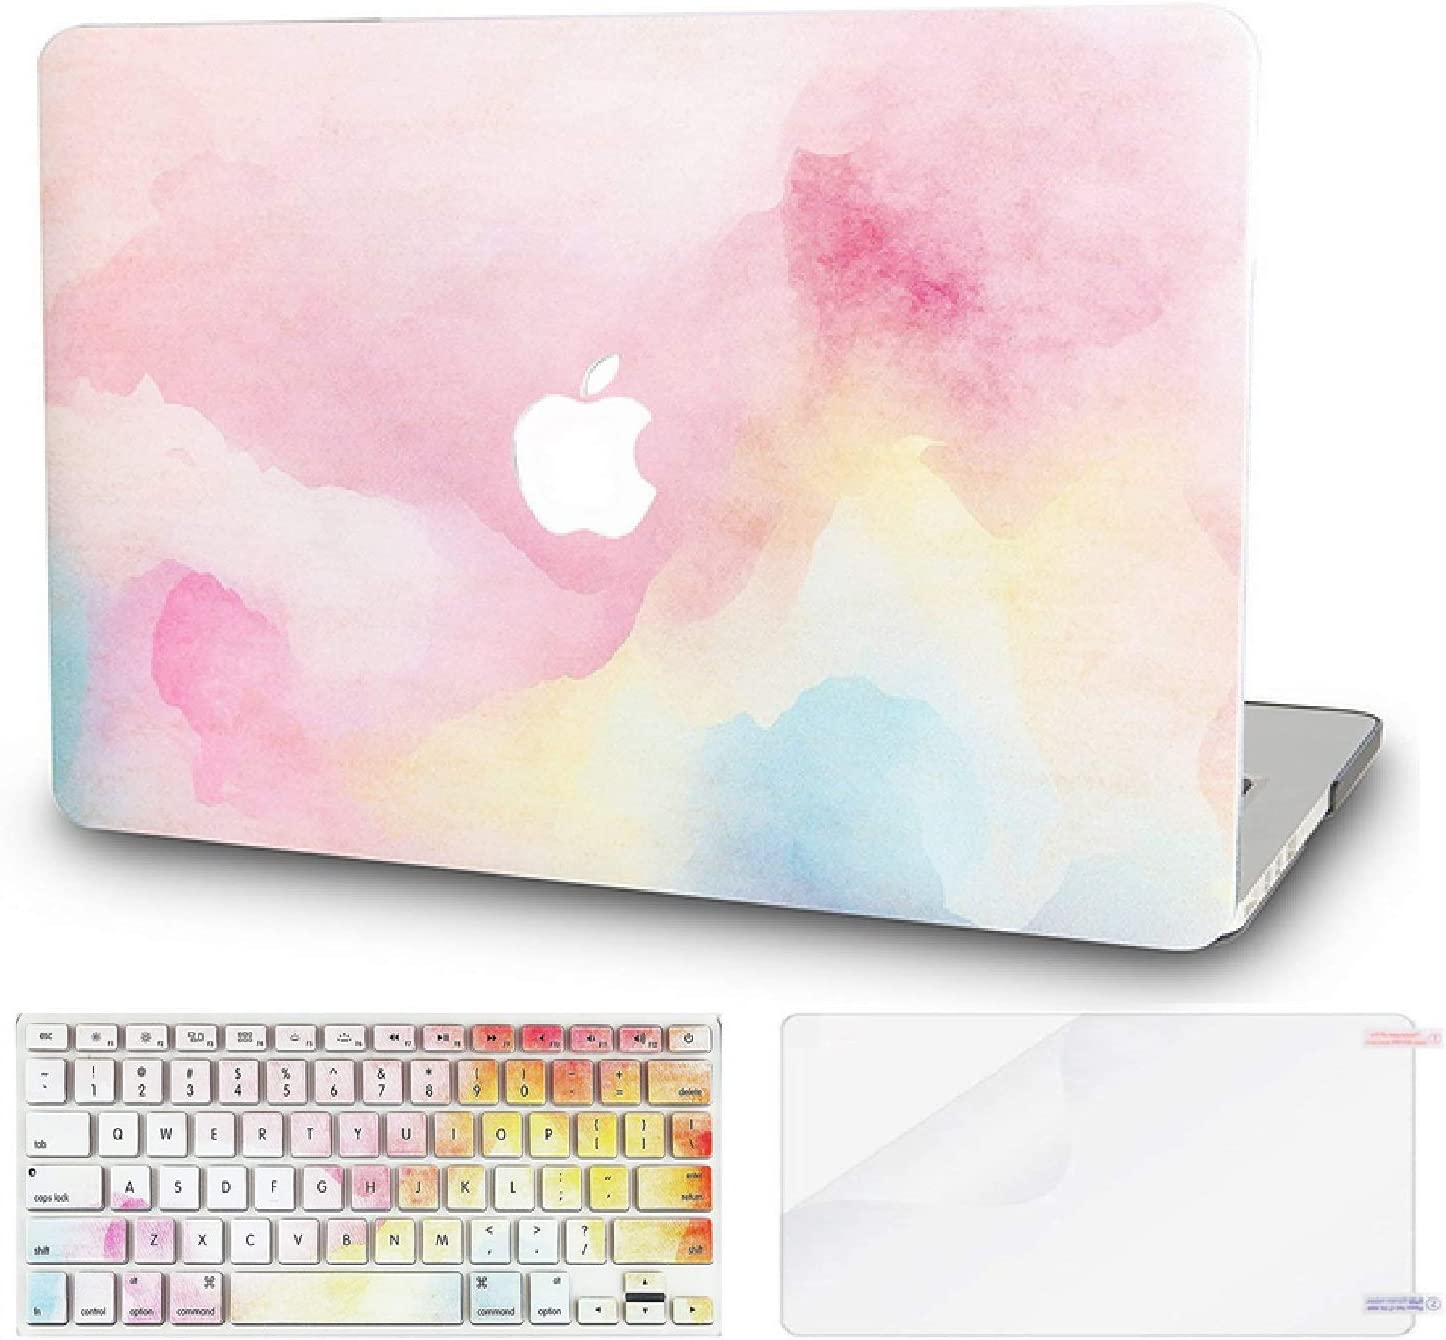 """KECC Laptop Case for MacBook Pro 13"""" (2020/2019/2018/2017/2016) w/Keyboard Cover Plastic Hard Shell A2159/A1989/A1706/A1708 Touch Bar + Screen Protector 3 in 1 Bundle (Rainbow Mist)"""